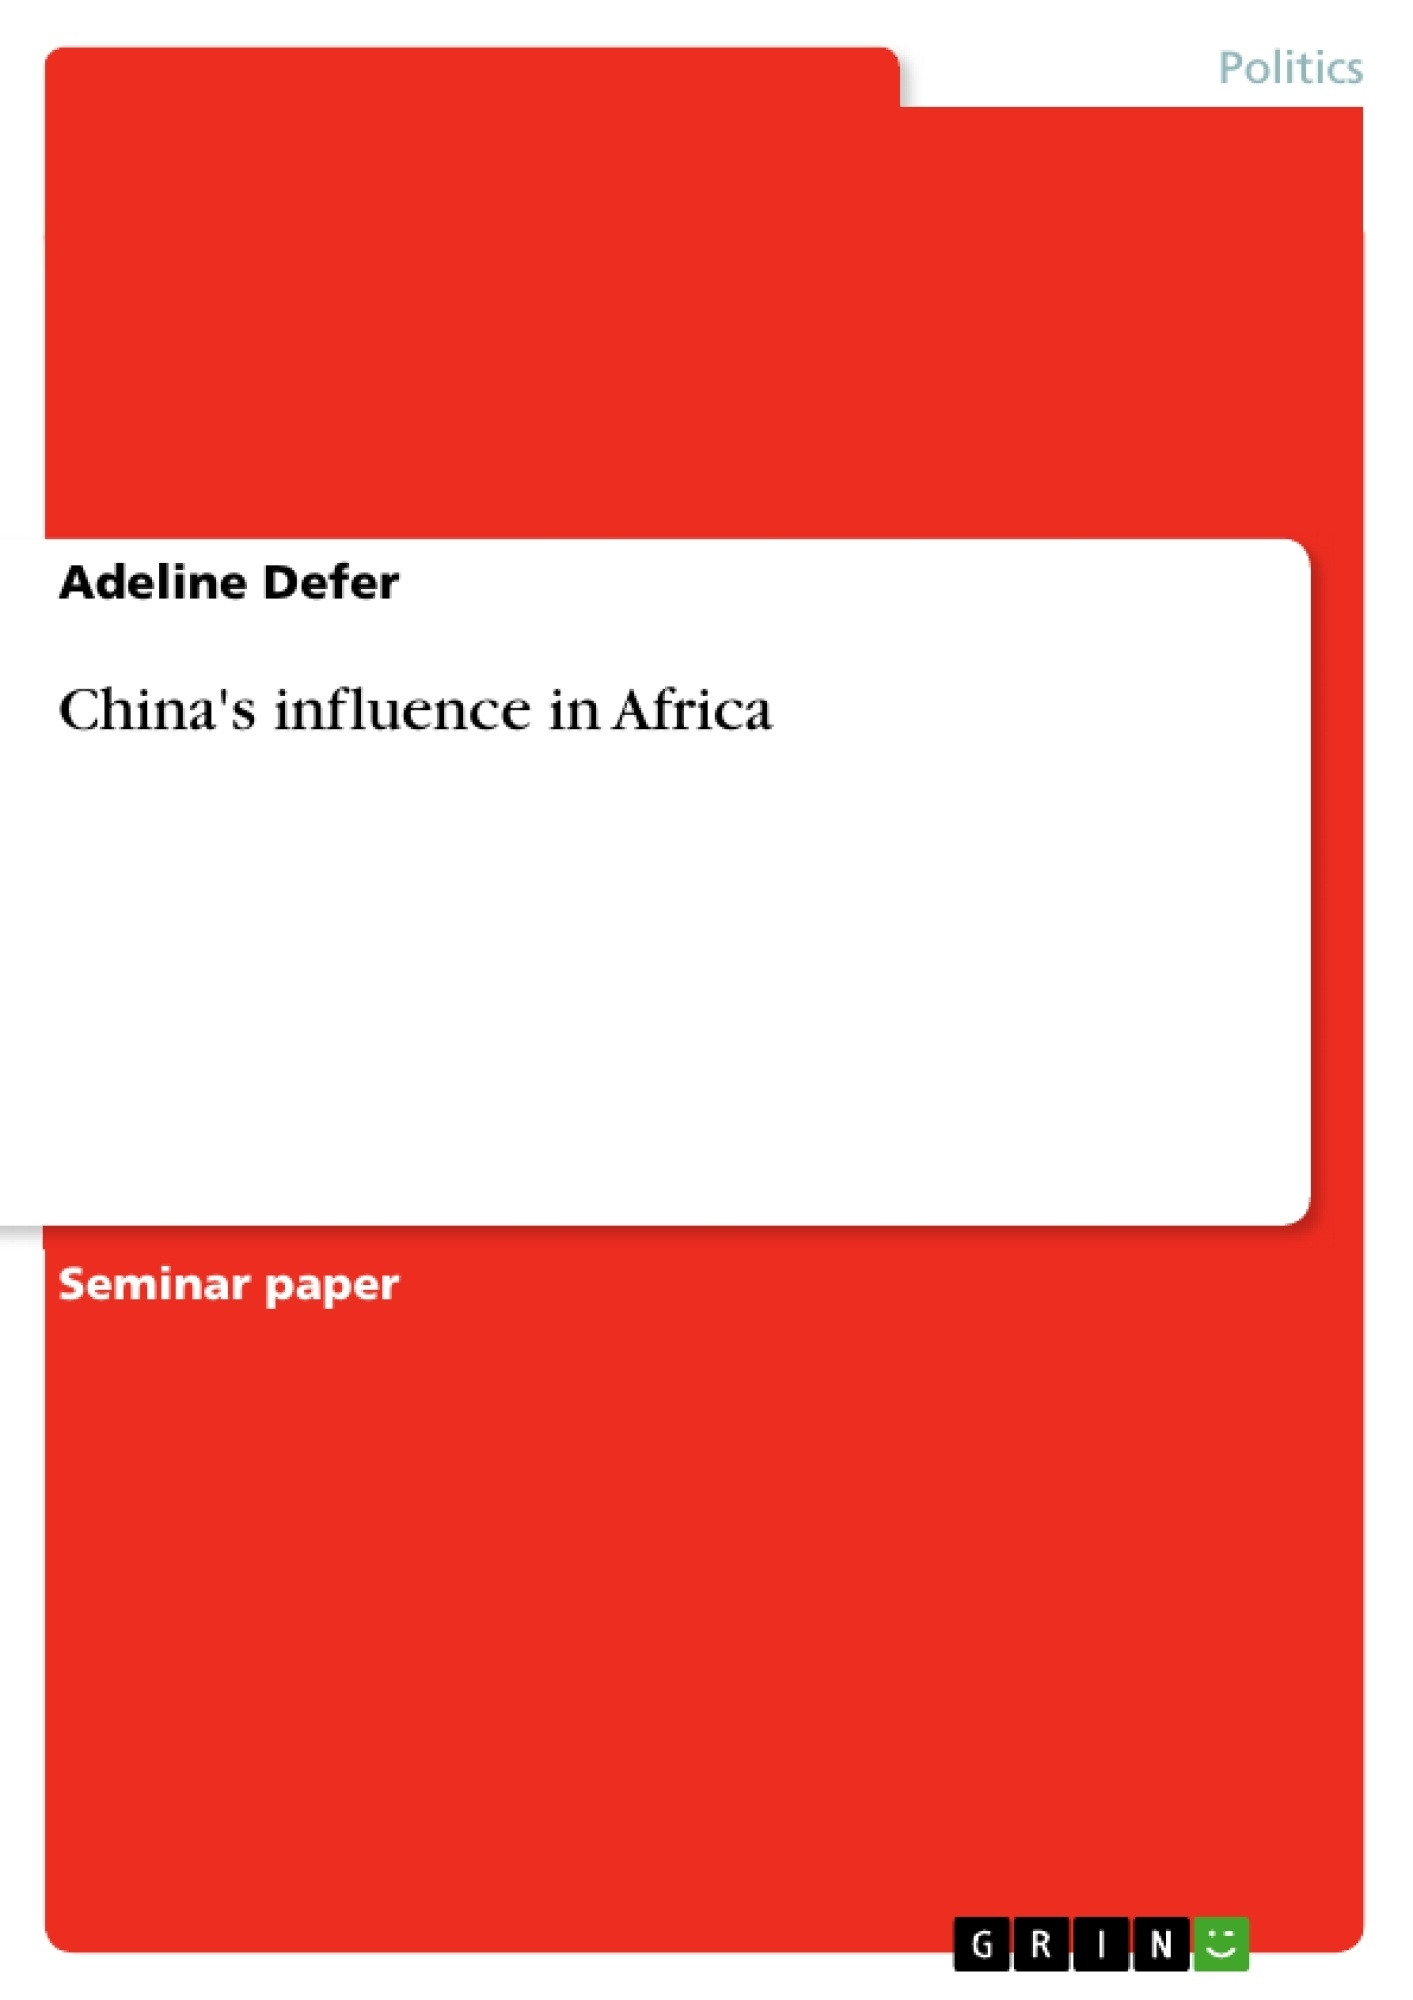 thesis china africa The environmental impact of china's investment in africa david h shinn 17 david shinn, china in africa: environmental implications and the law, int.